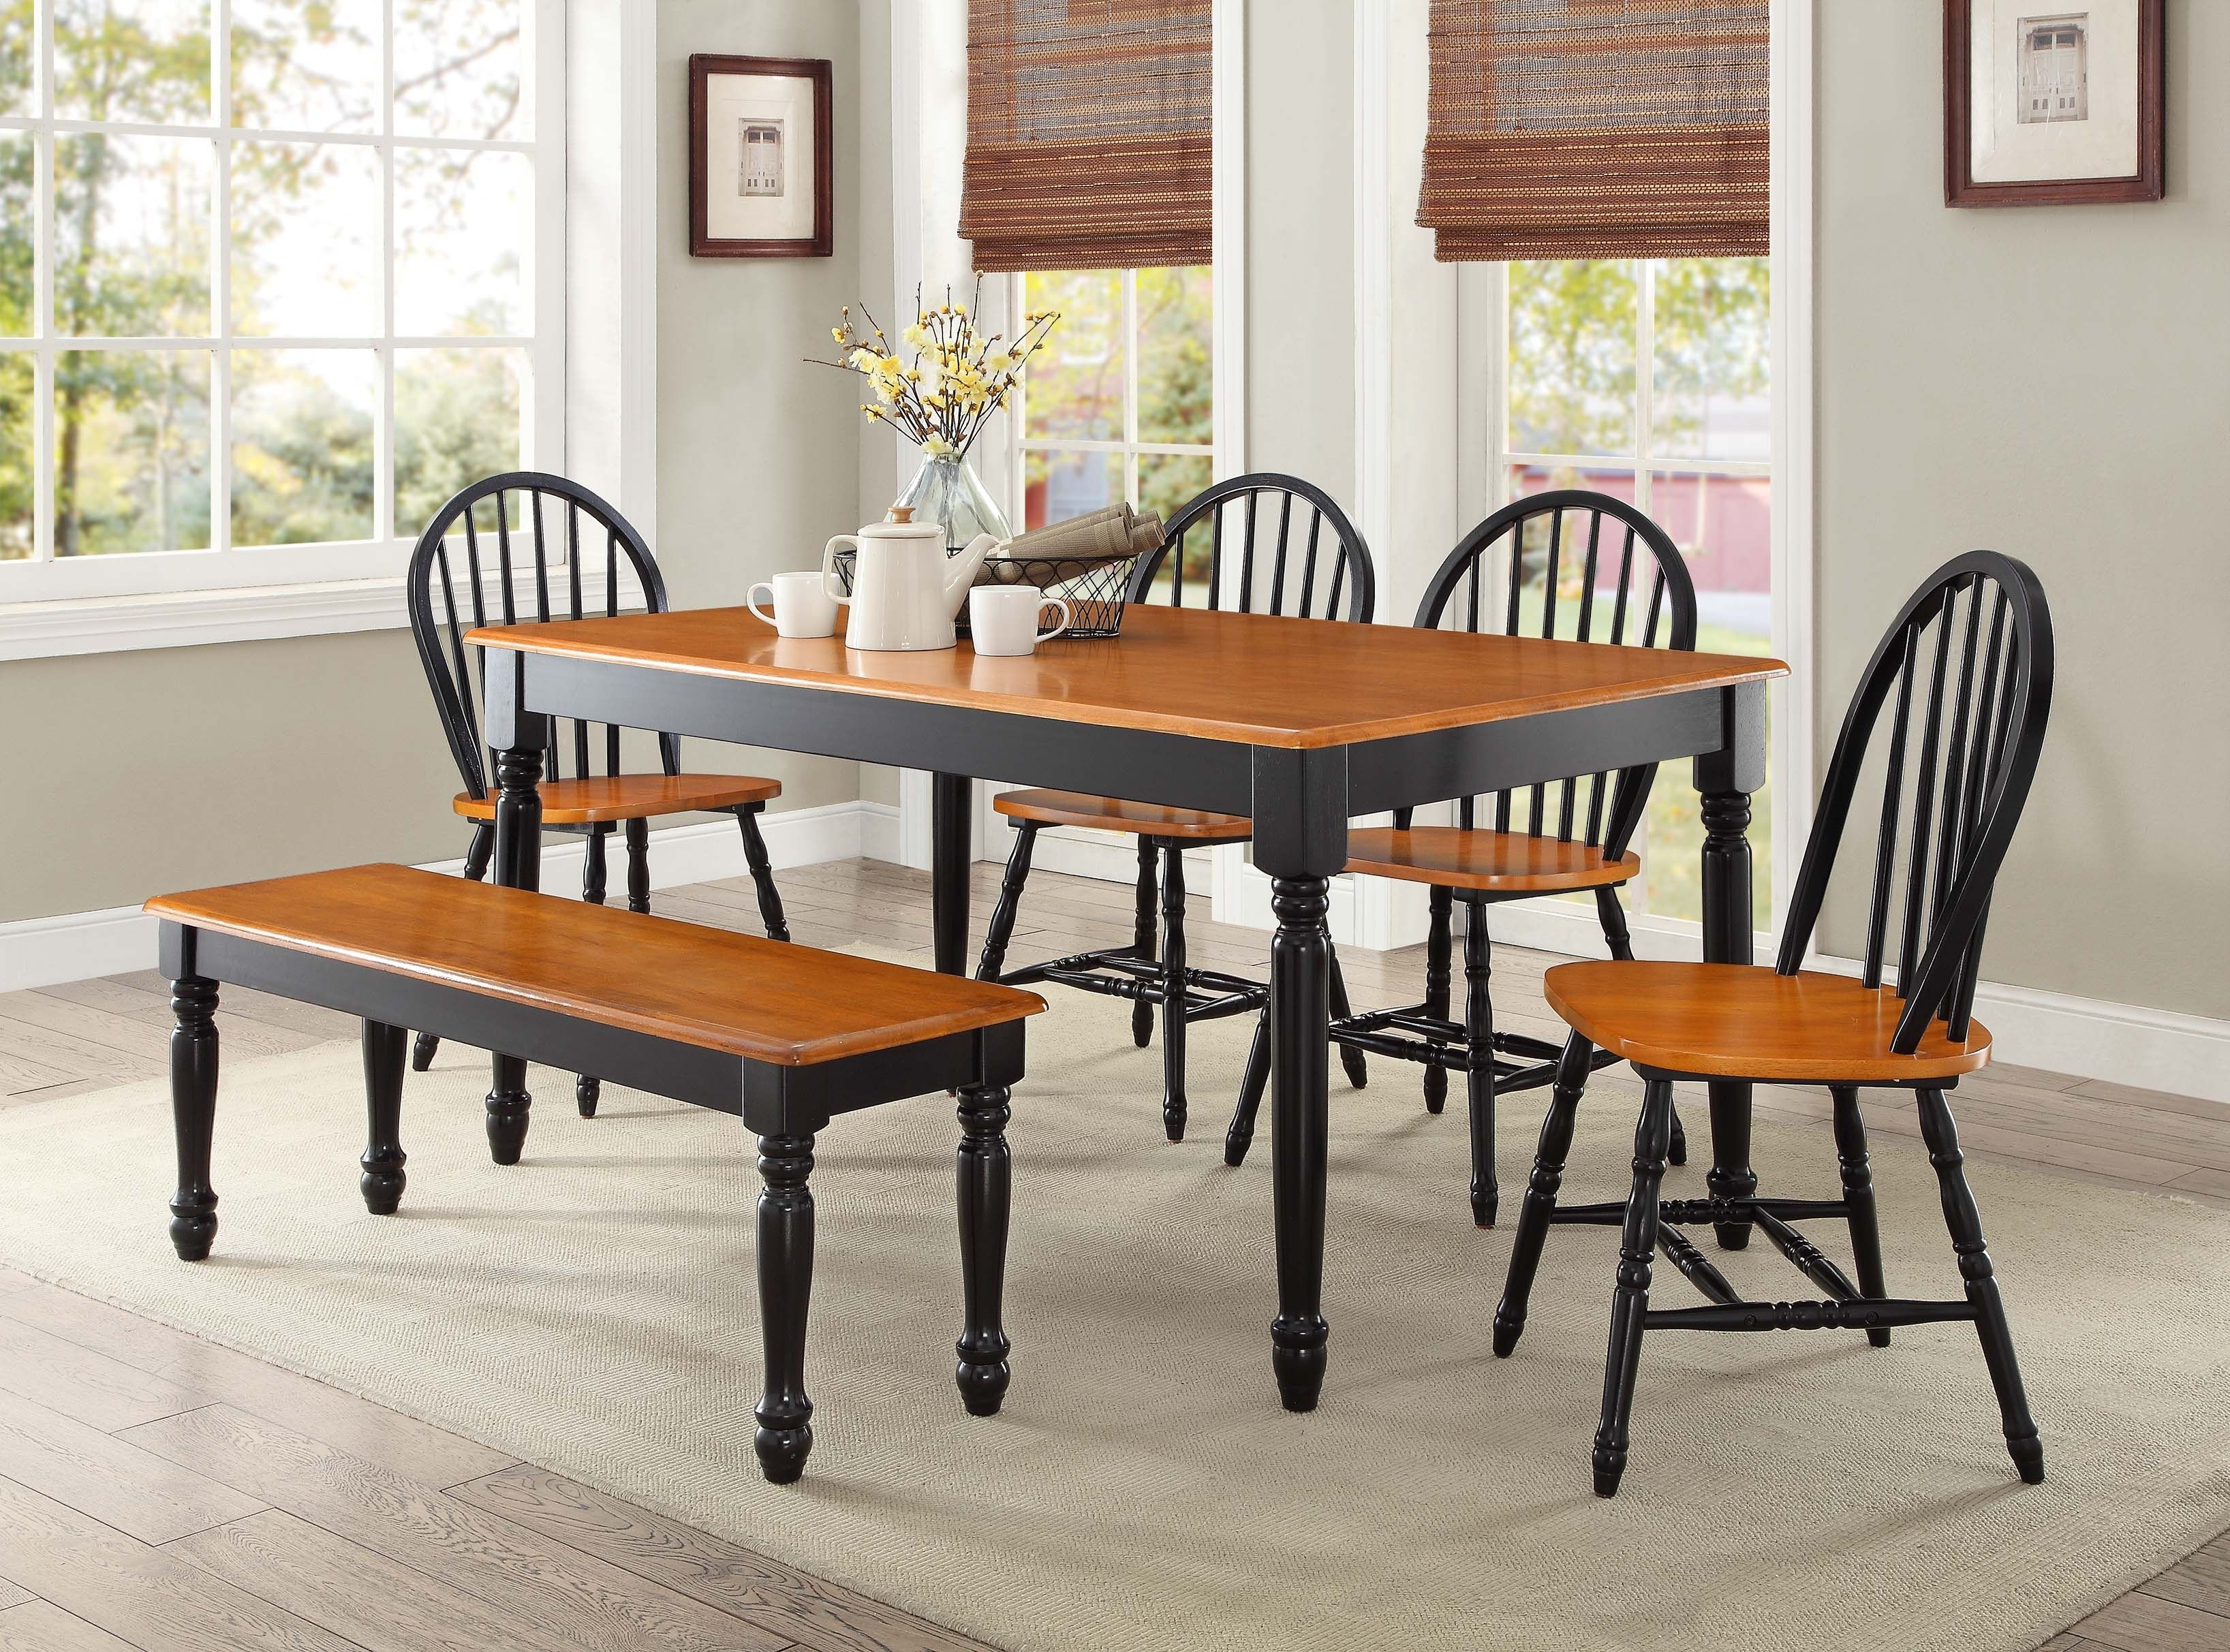 table tables sale mediajoongdok best sets with com ideas kitchen pretty for of sofa rustic dining